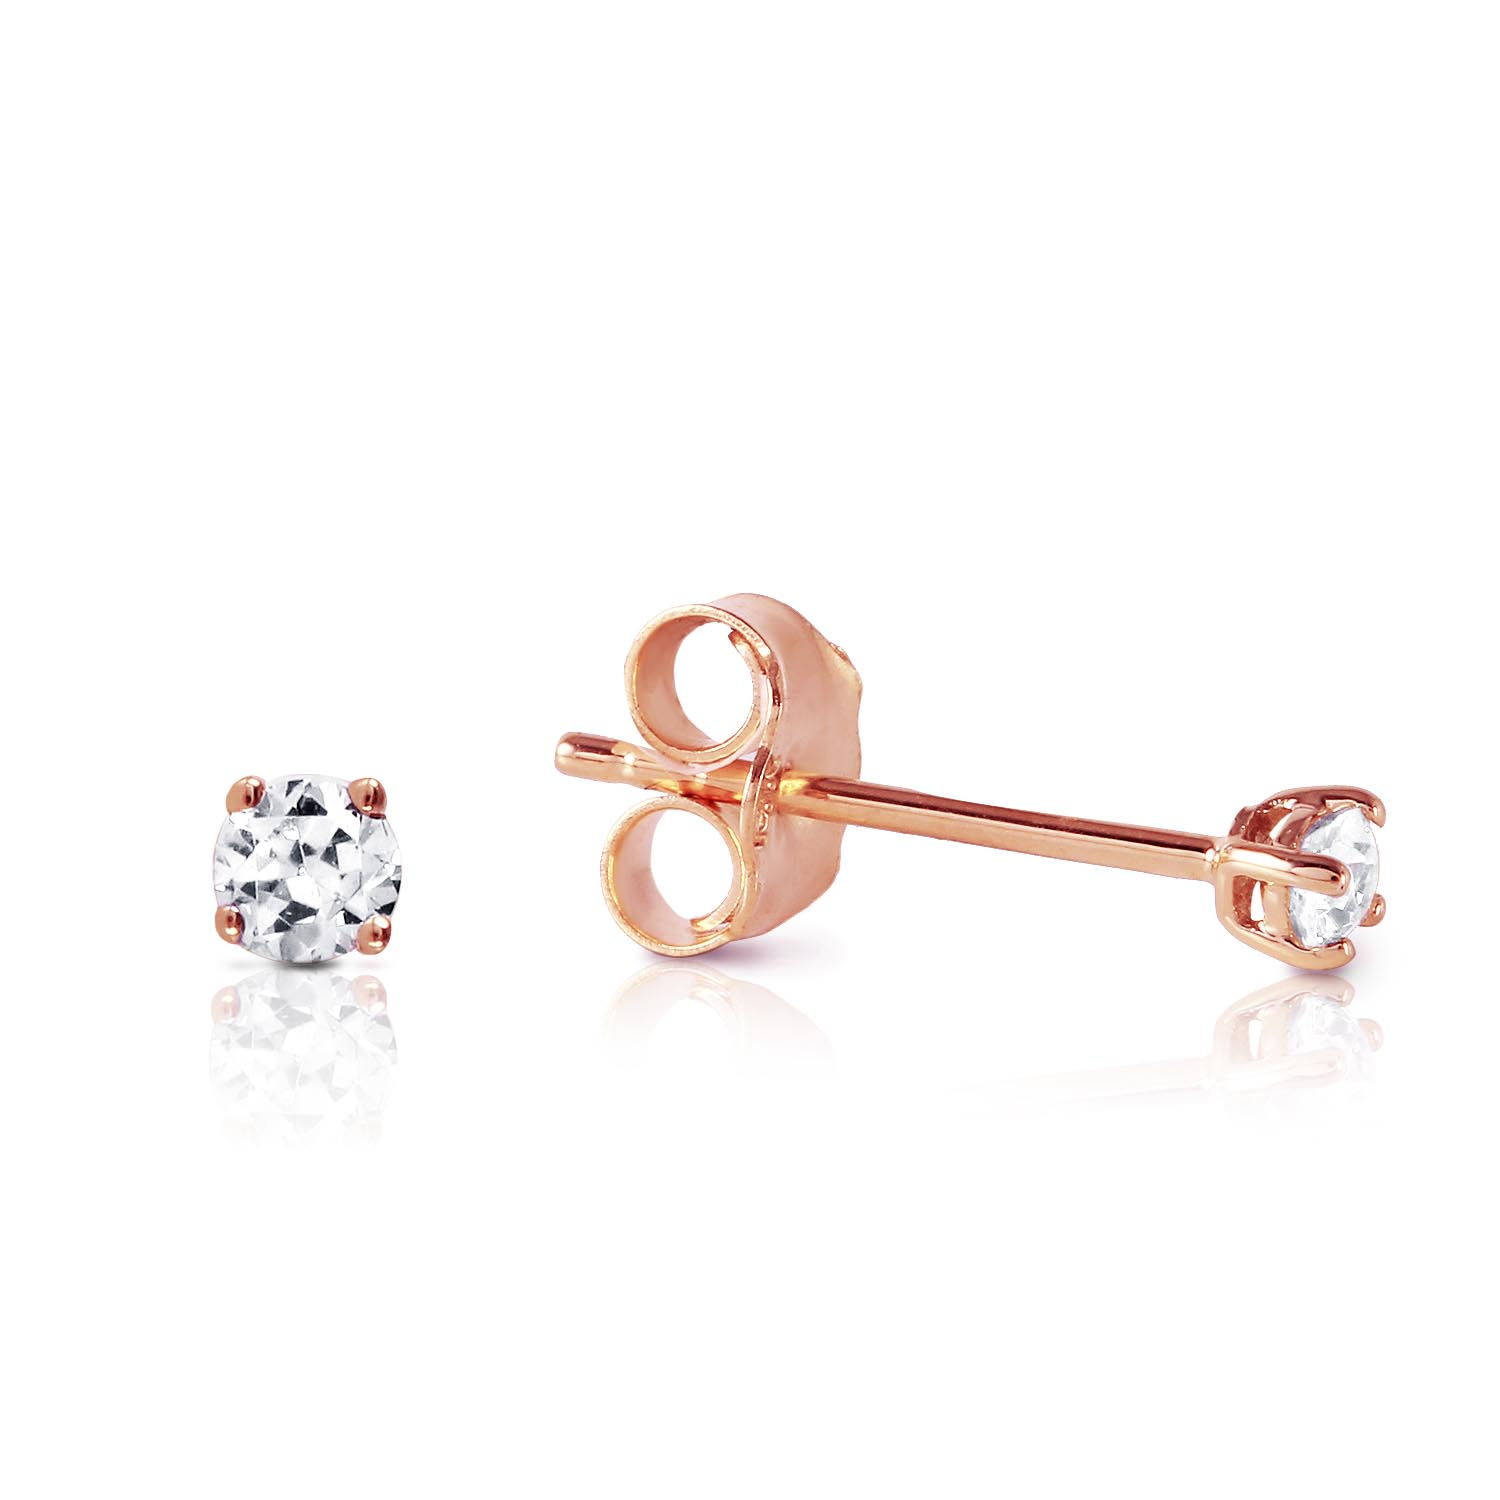 Diamond Stud Earrings 0.1 ctw in 9ct Rose Gold